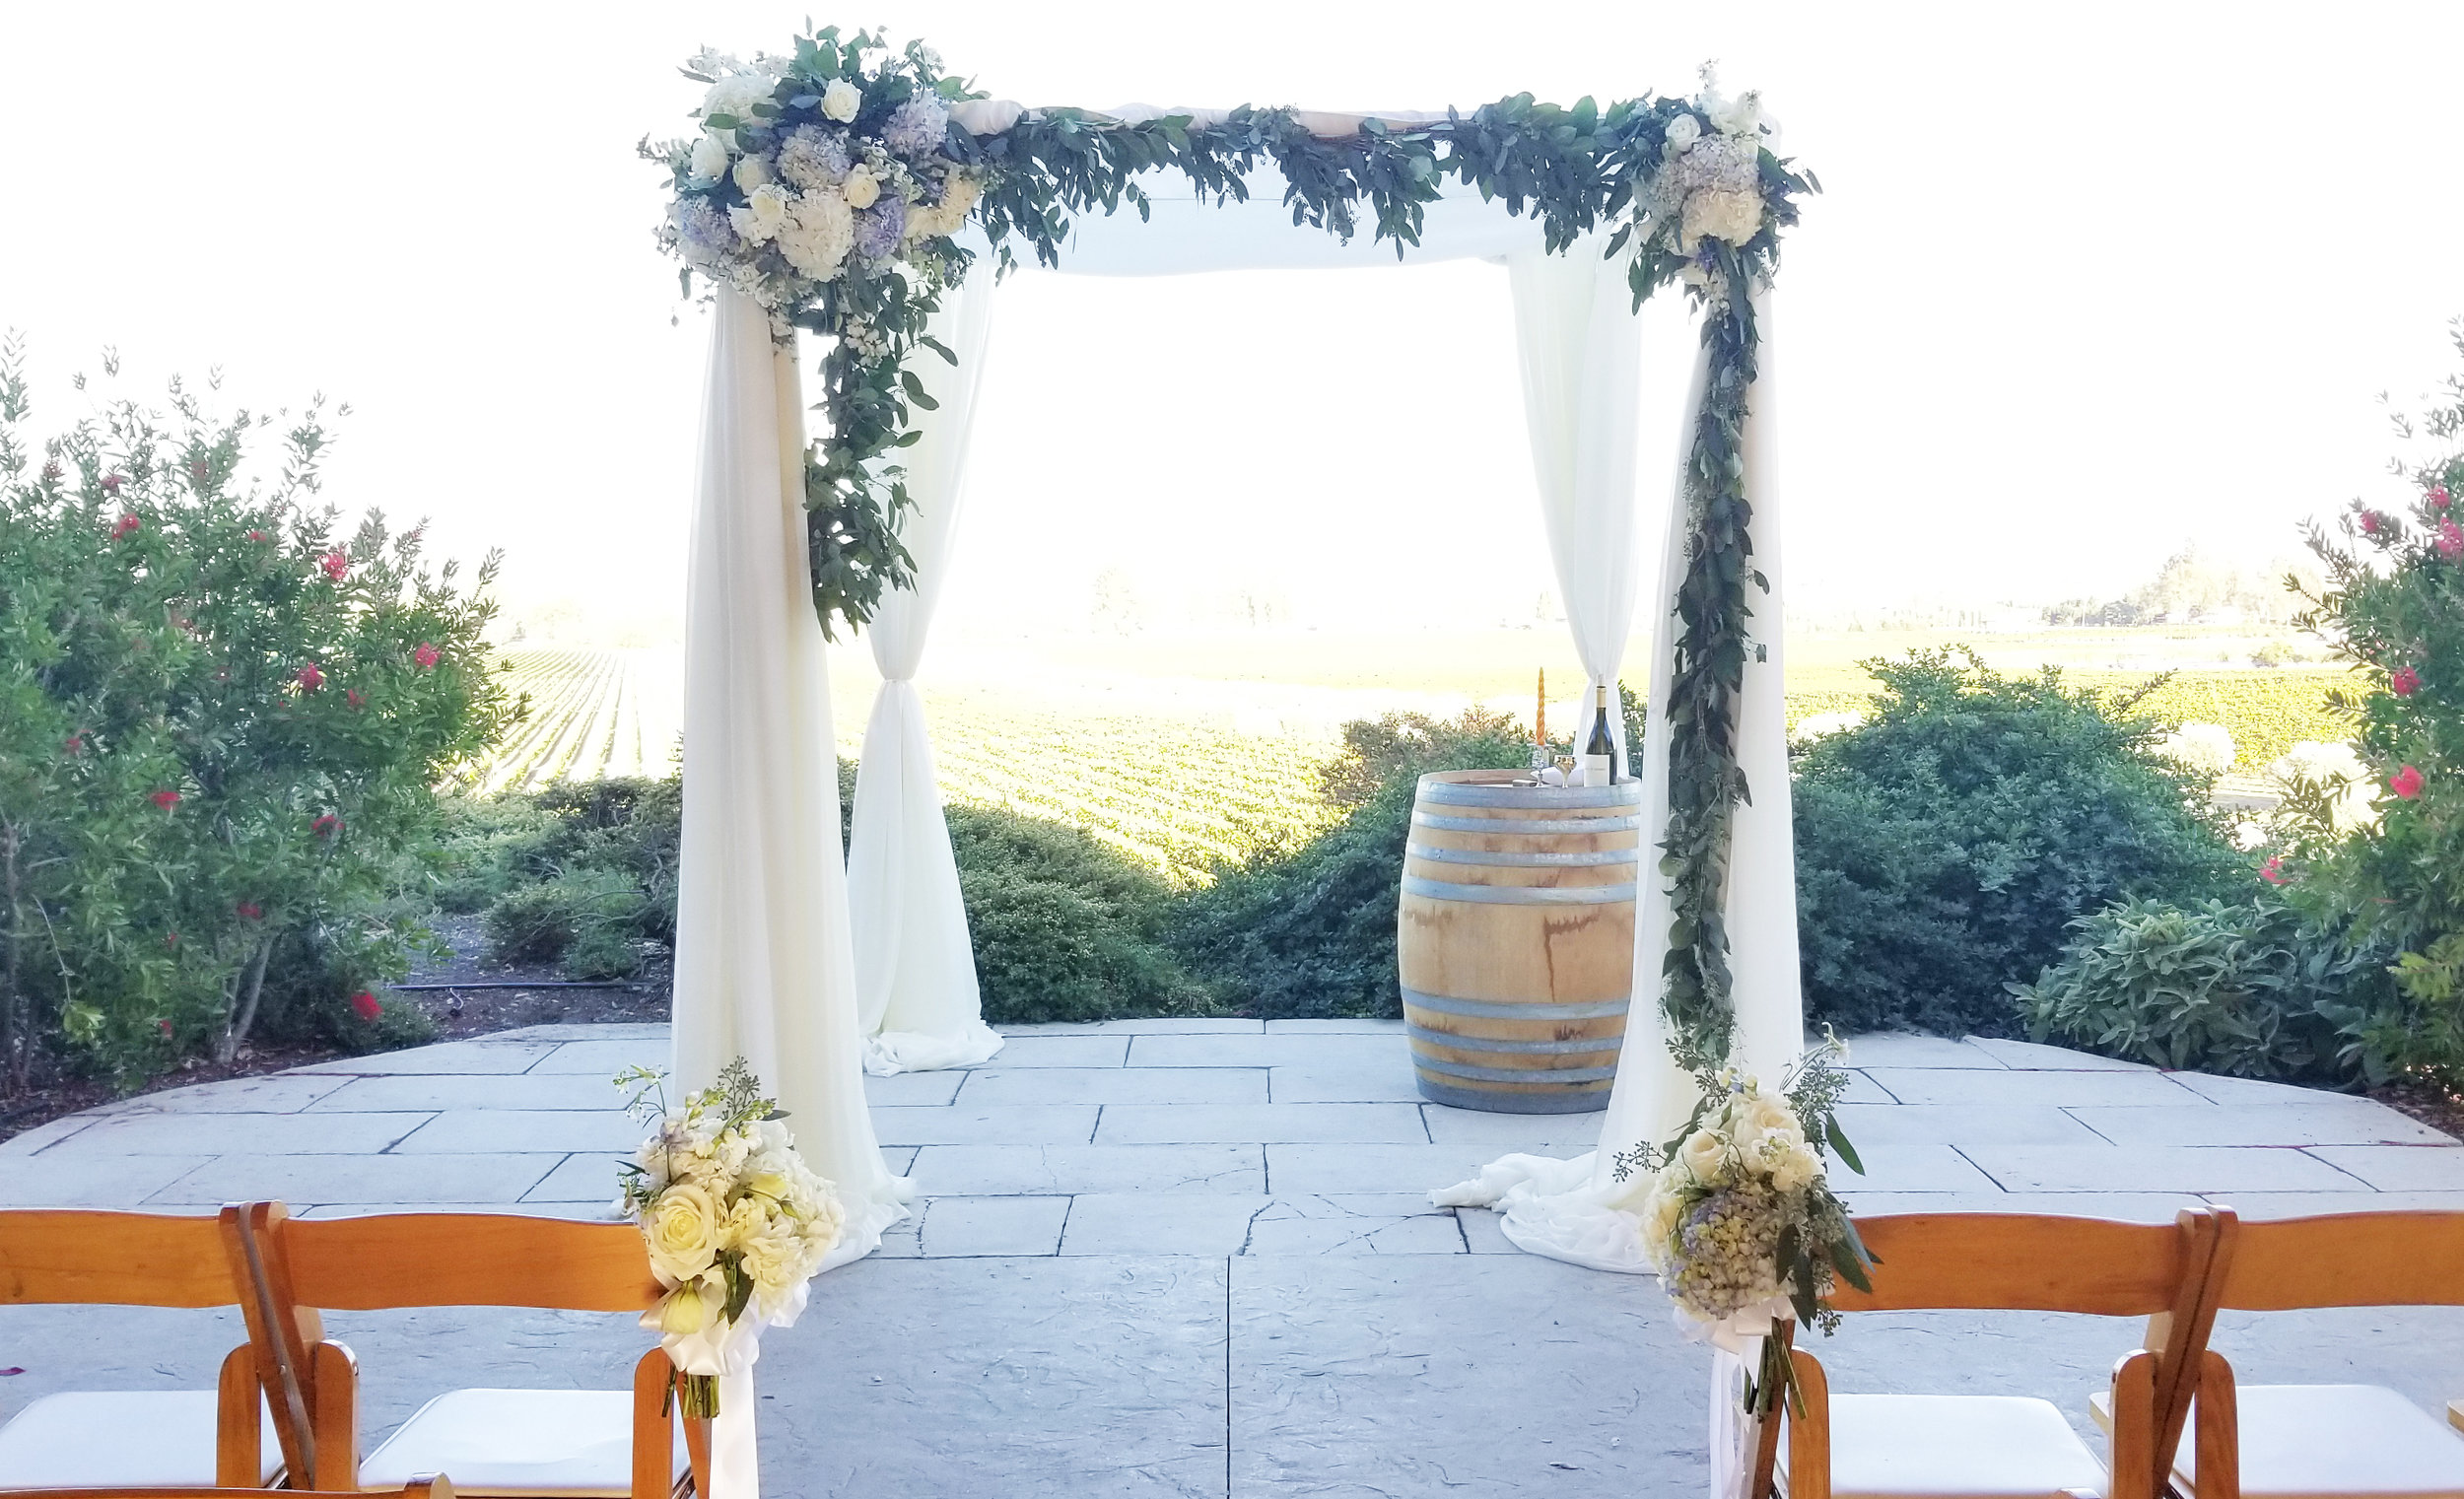 Gloria Ferrer pavilion wedding ceremony, chuppah draped in sheer white with flowing eucalyptus greenery, blush and white flowers.